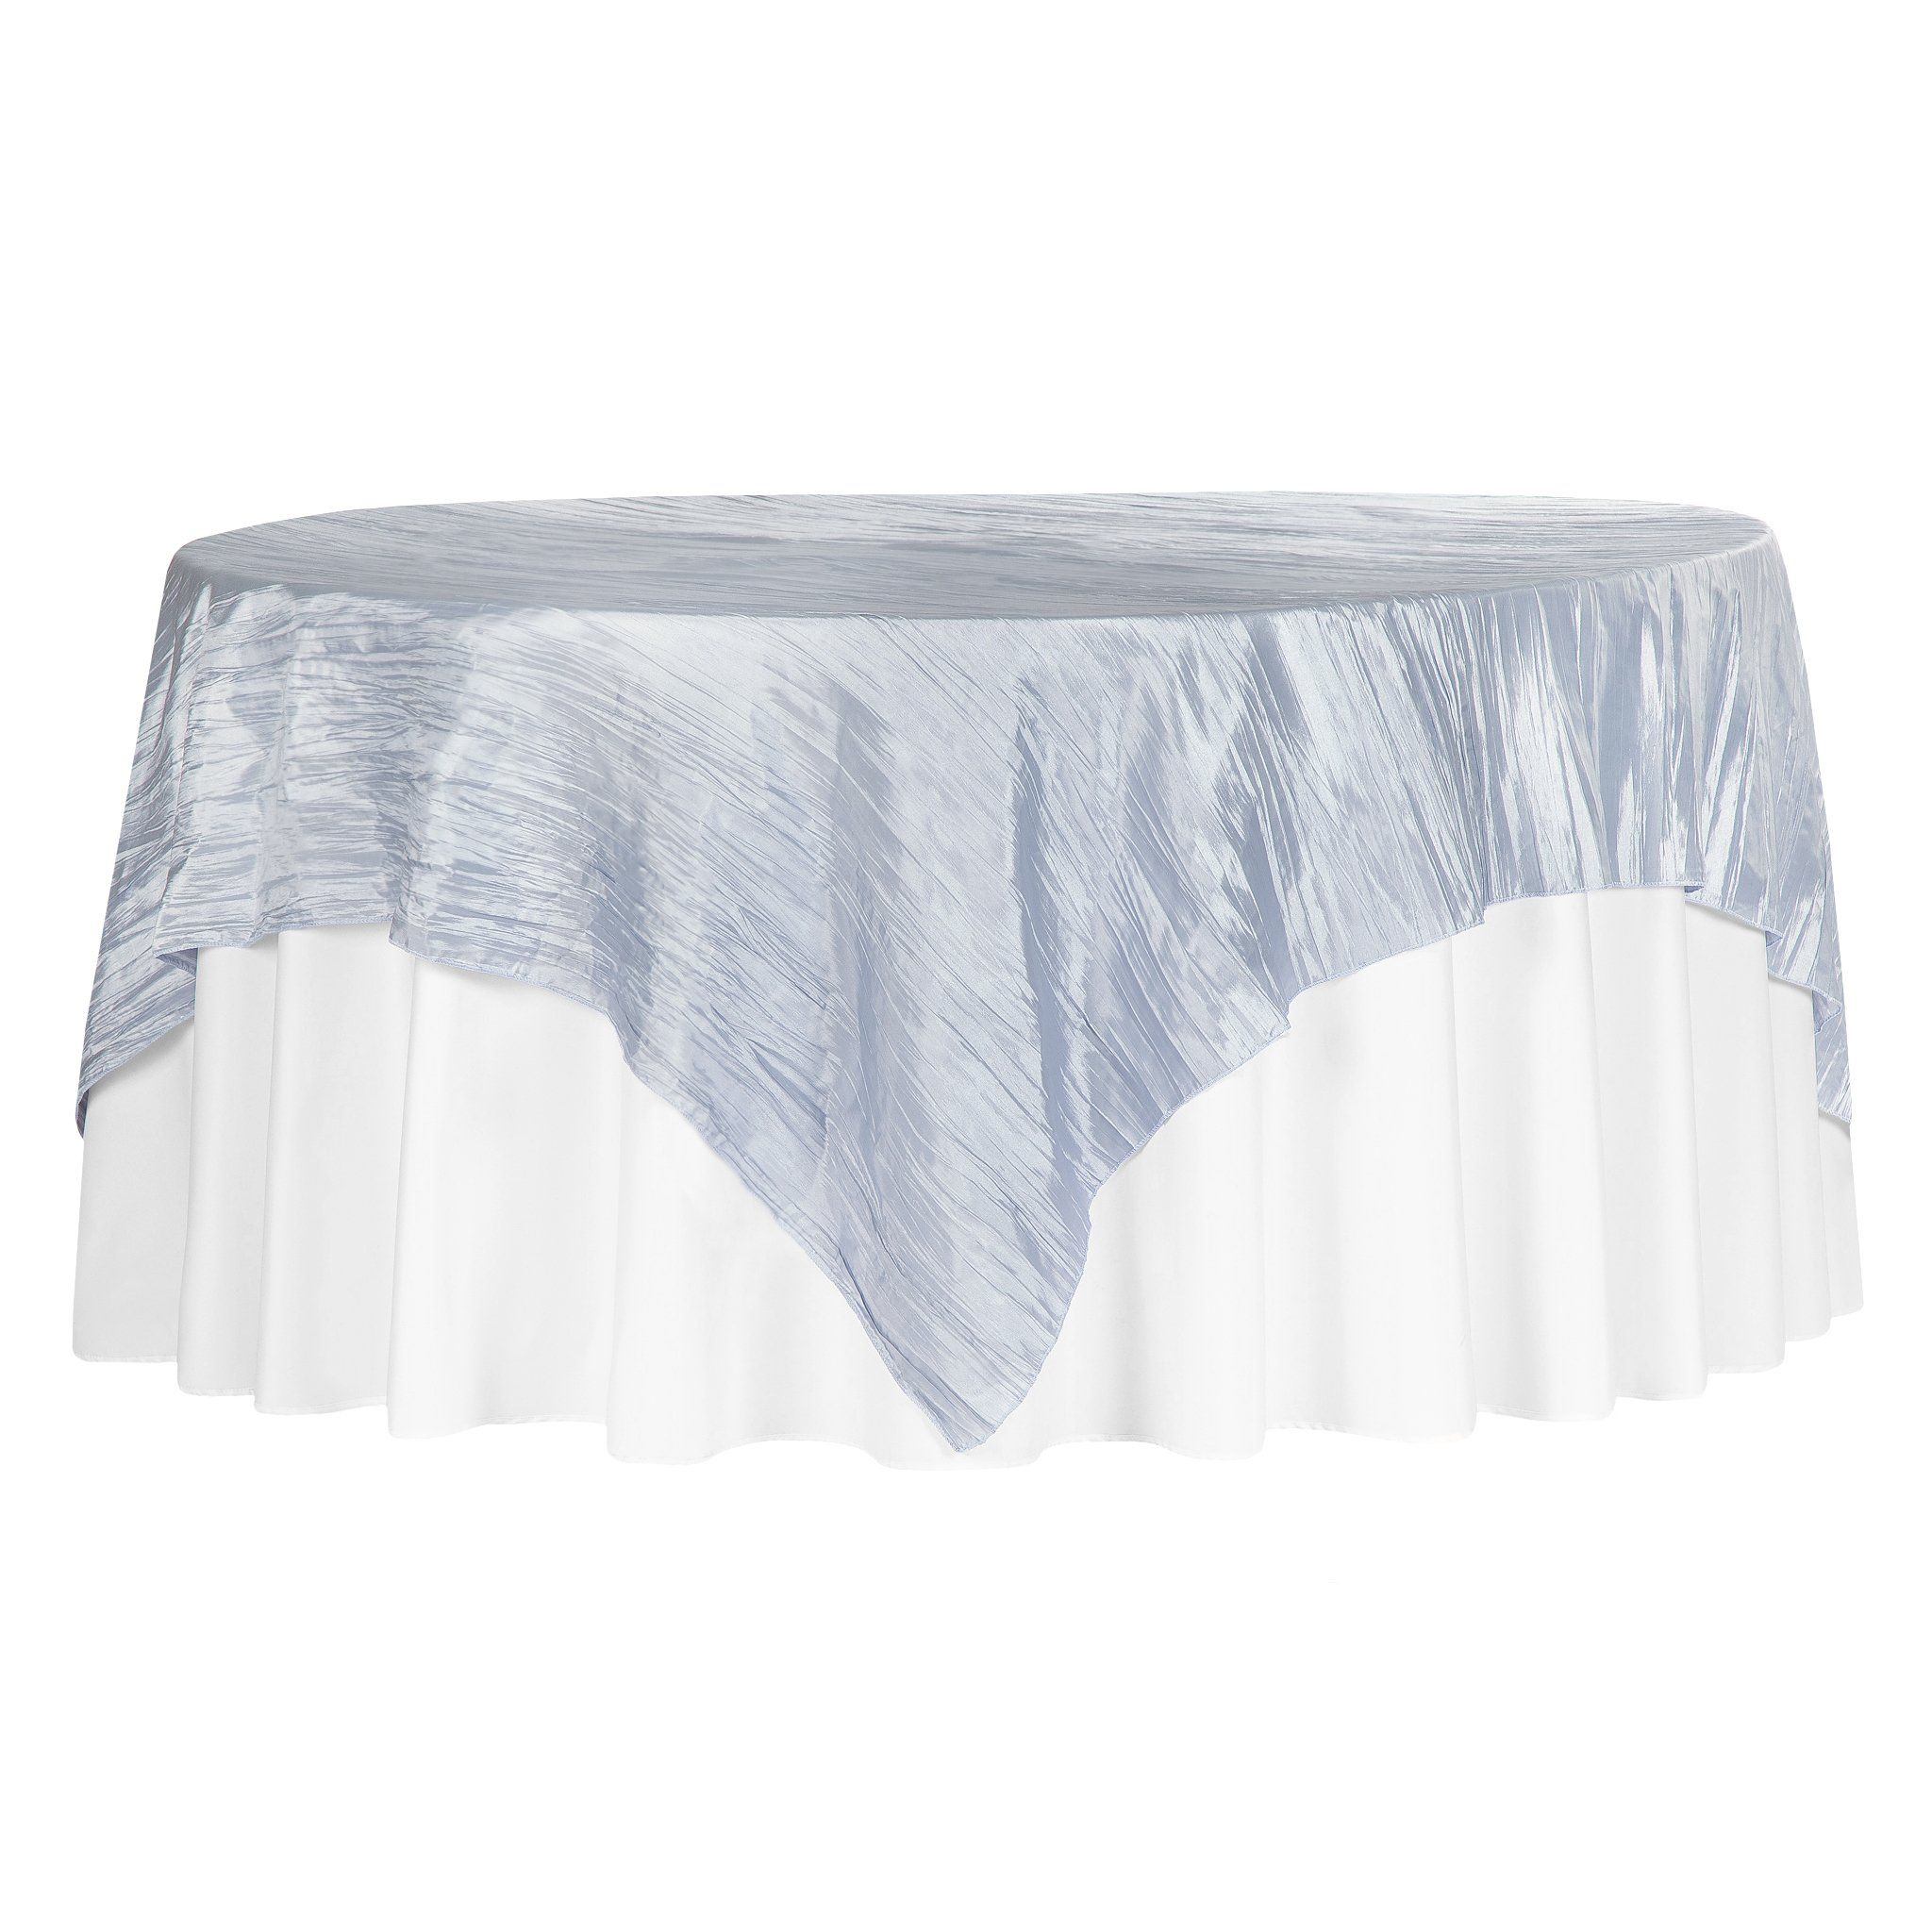 "Accordion Crinkle Taffeta Table Overlay Topper 85""x85"" Square - Dusty Blue"